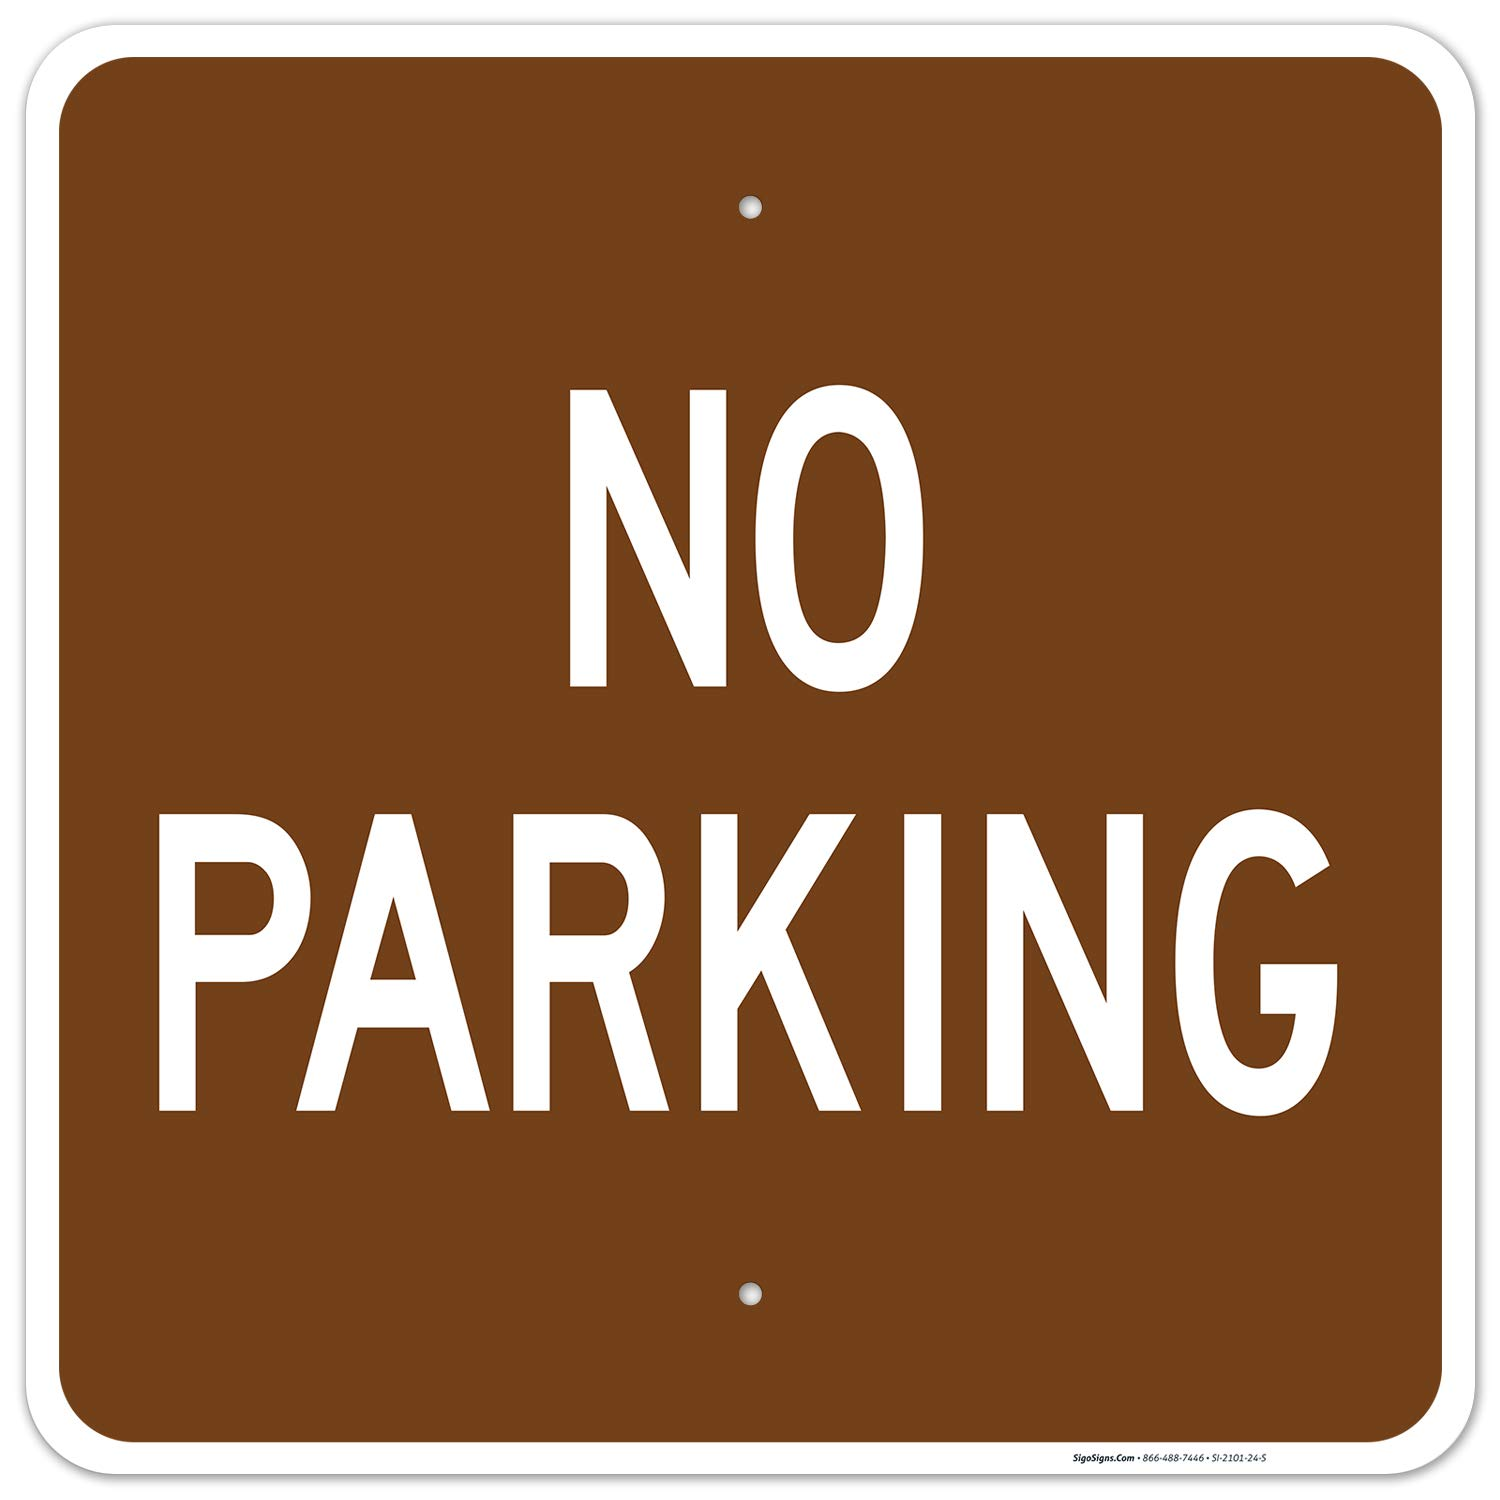 No Parking Sign 24x24 Inches Rust 春の新作続々 Res Fade 国内送料無料 Free .063 Aluminum